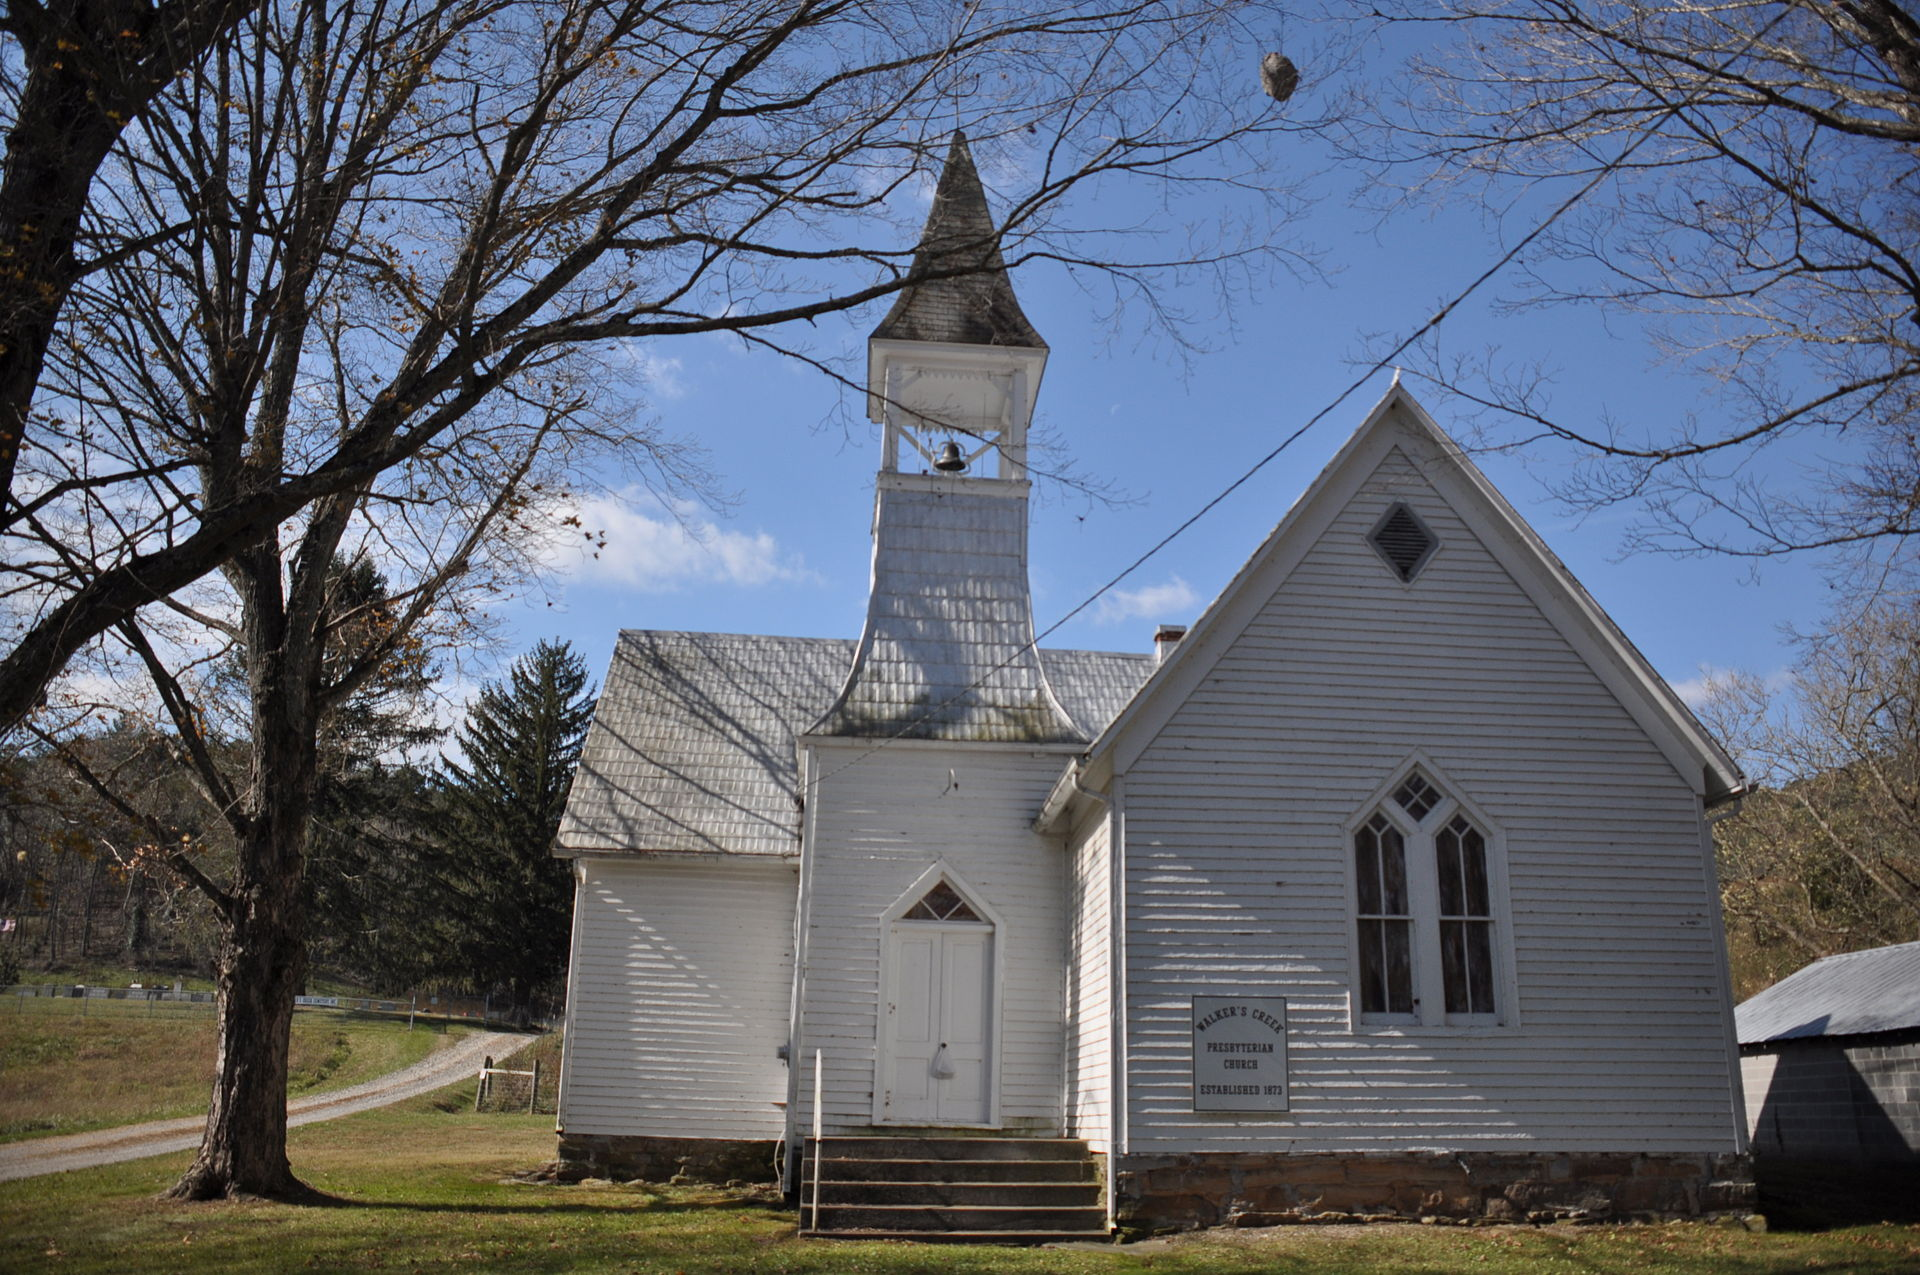 Walker's Creek Presbyterian Church